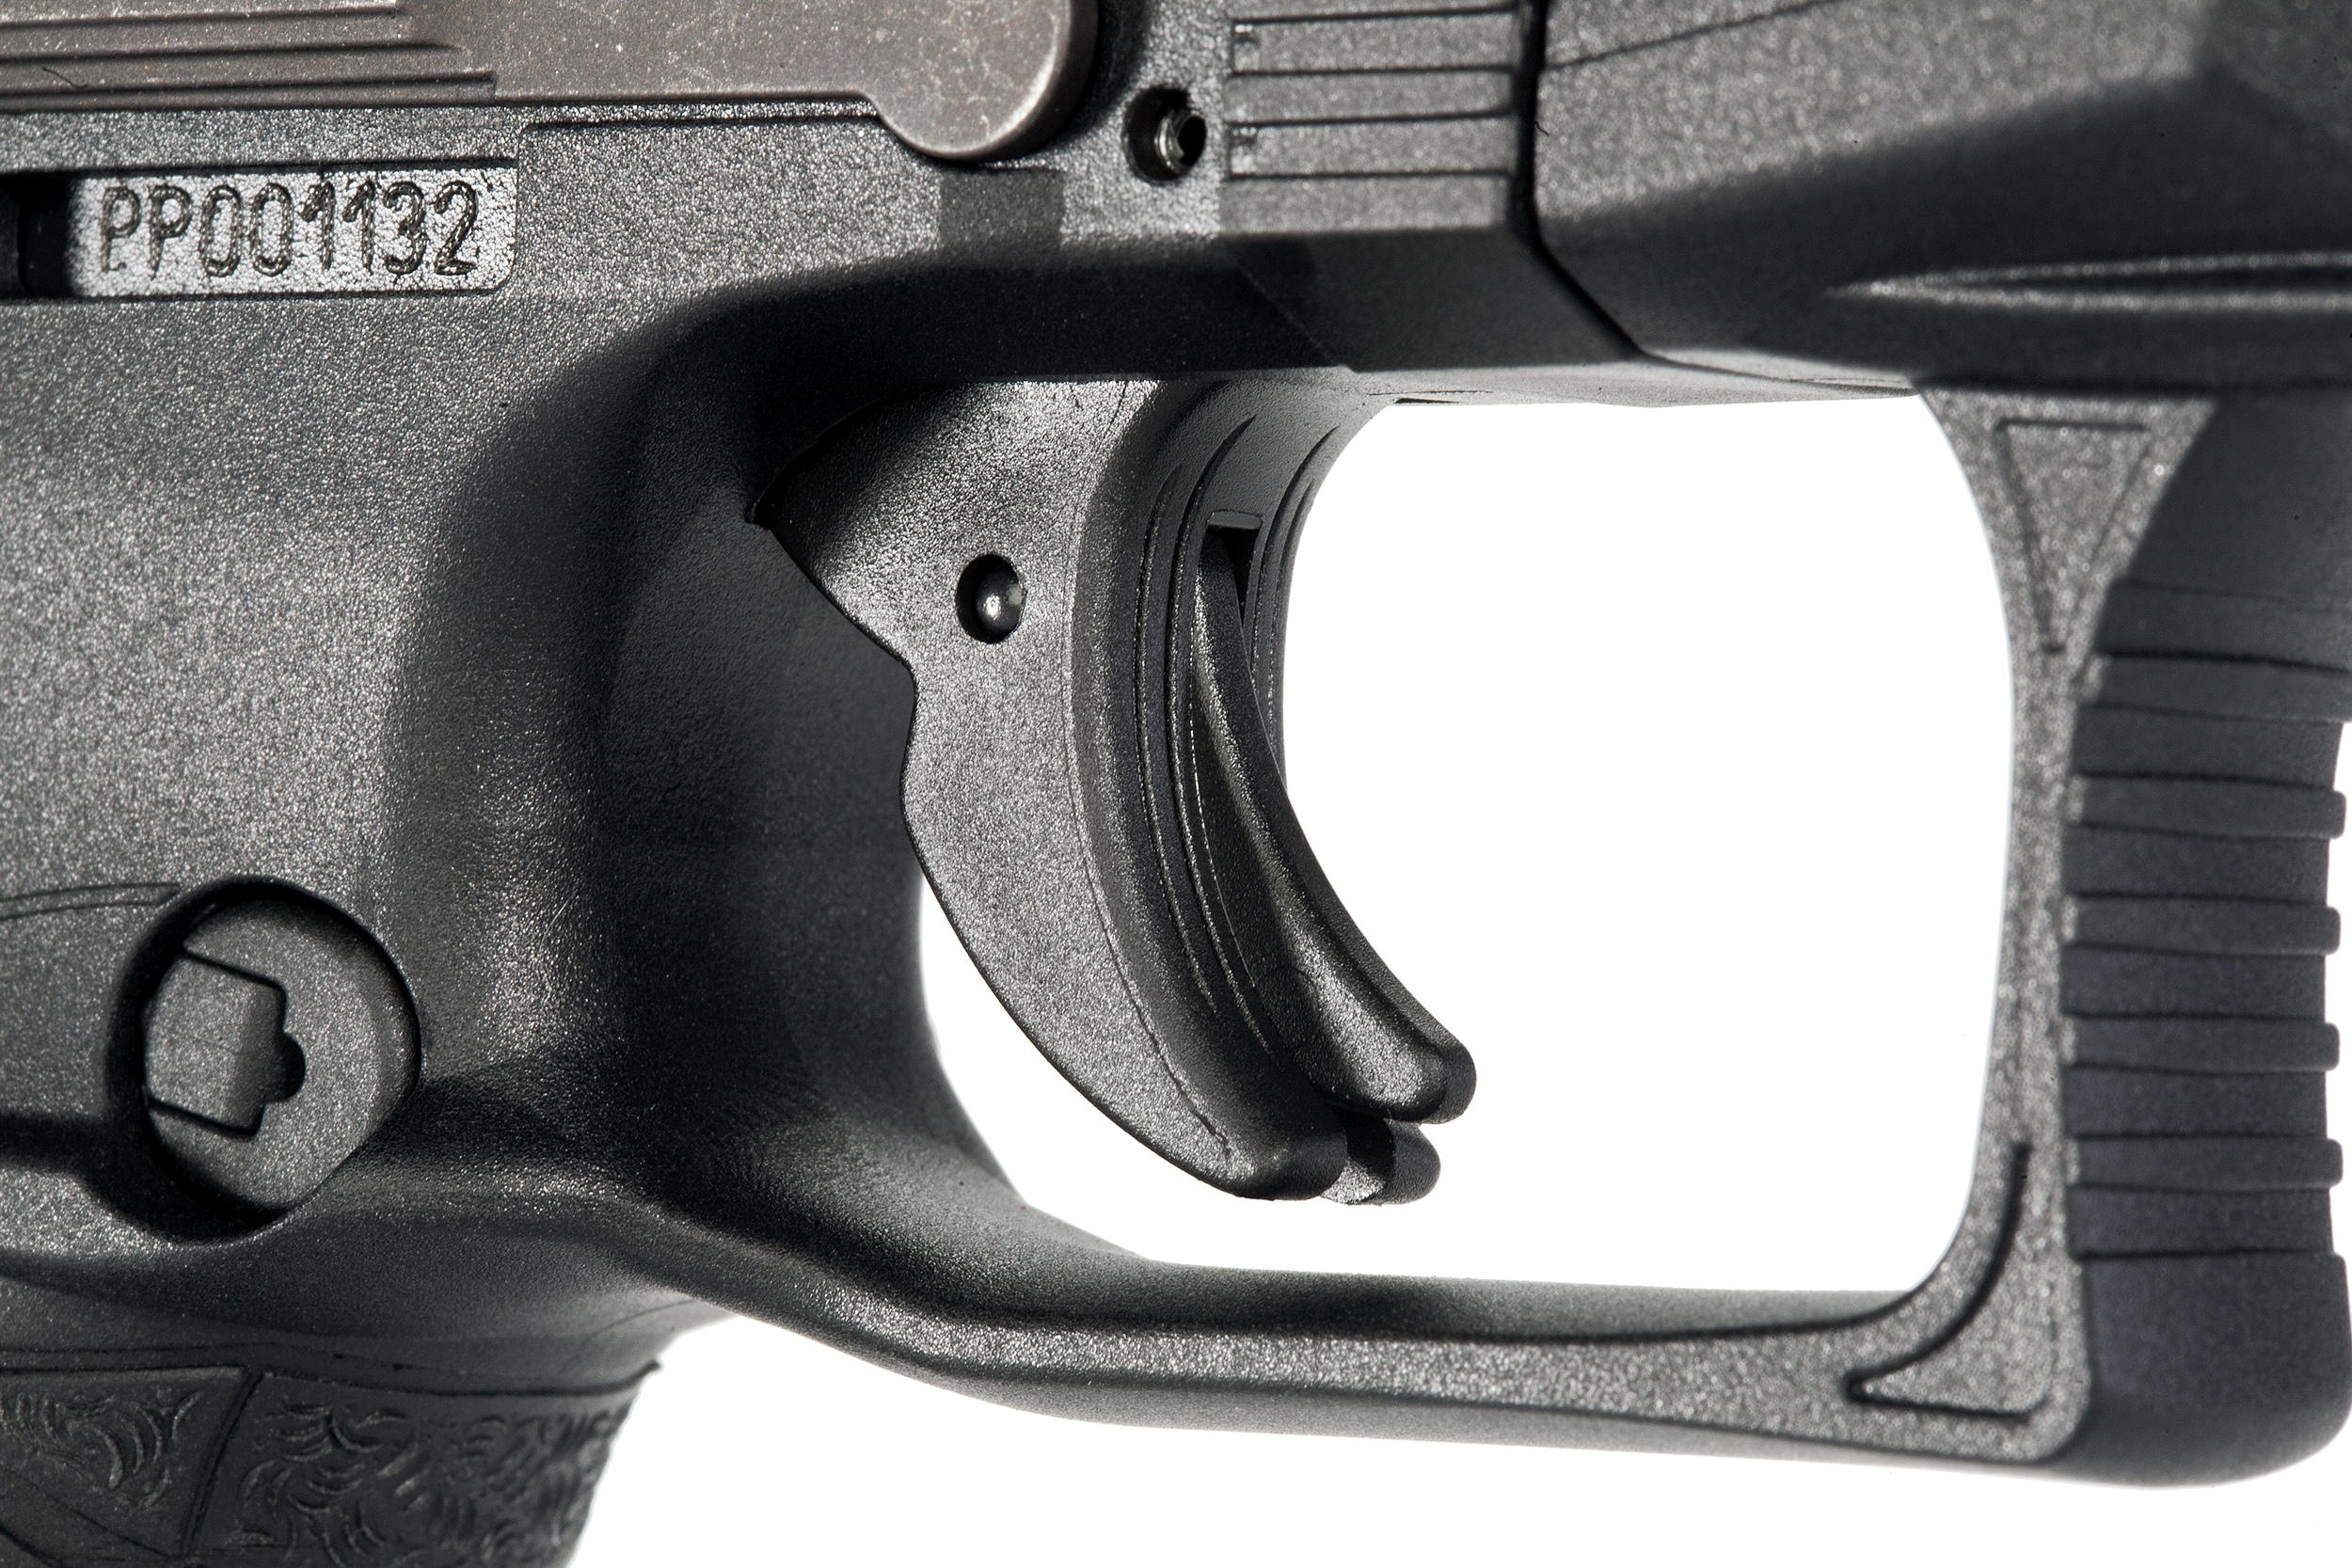 Walther Ppq High Definition